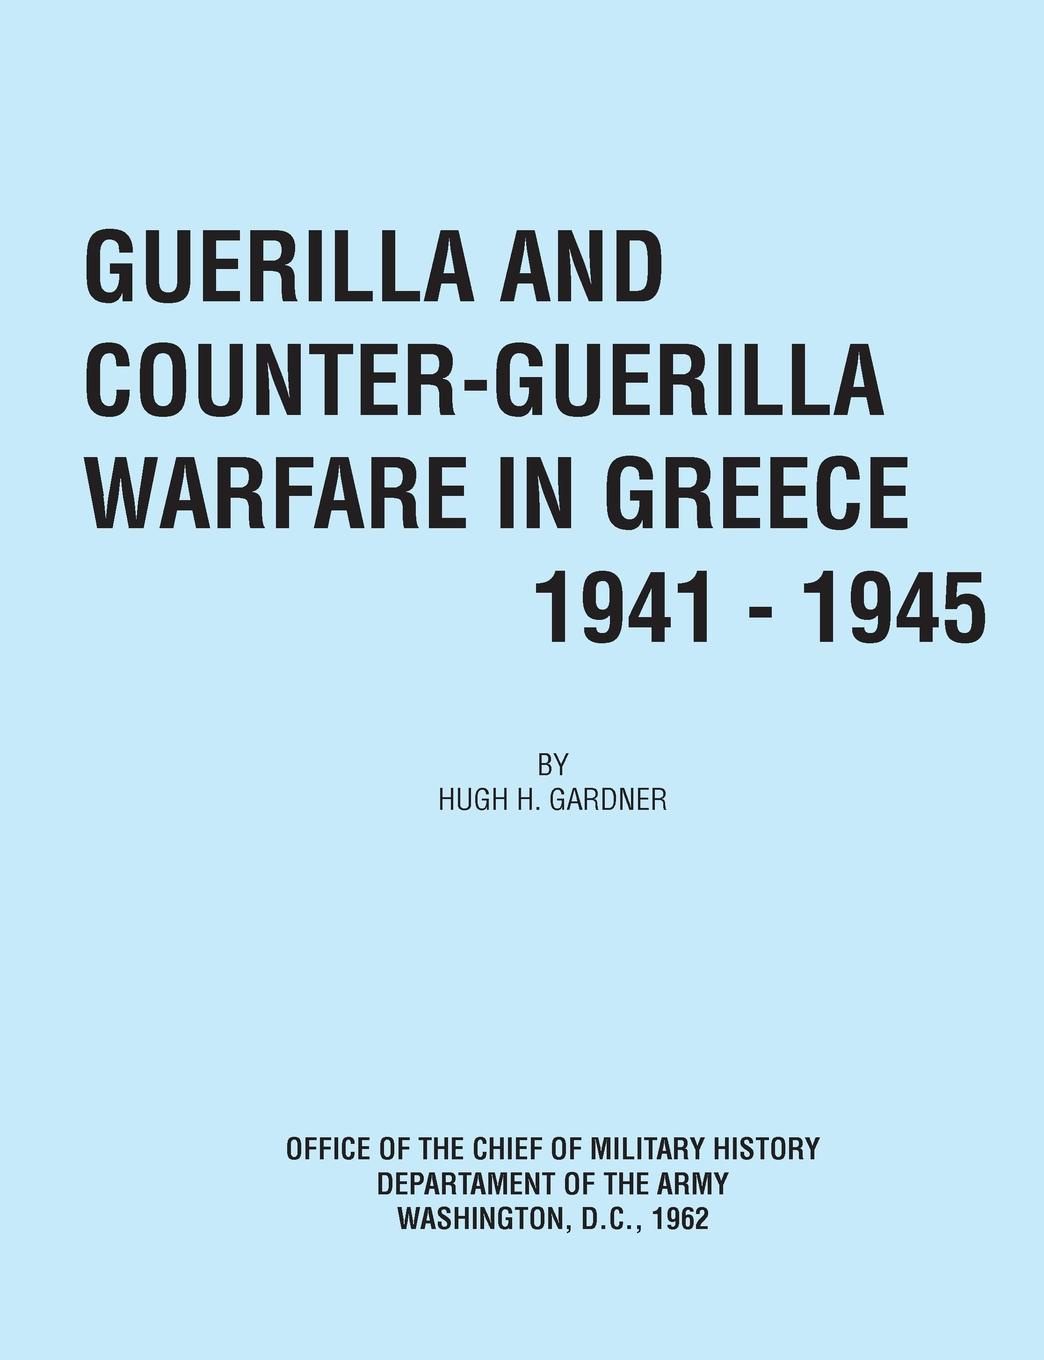 Hugh C. Gardner, Office of the Chief of Military History Guerilla and Counter Guerilla Warfare in Greece 1941-1945